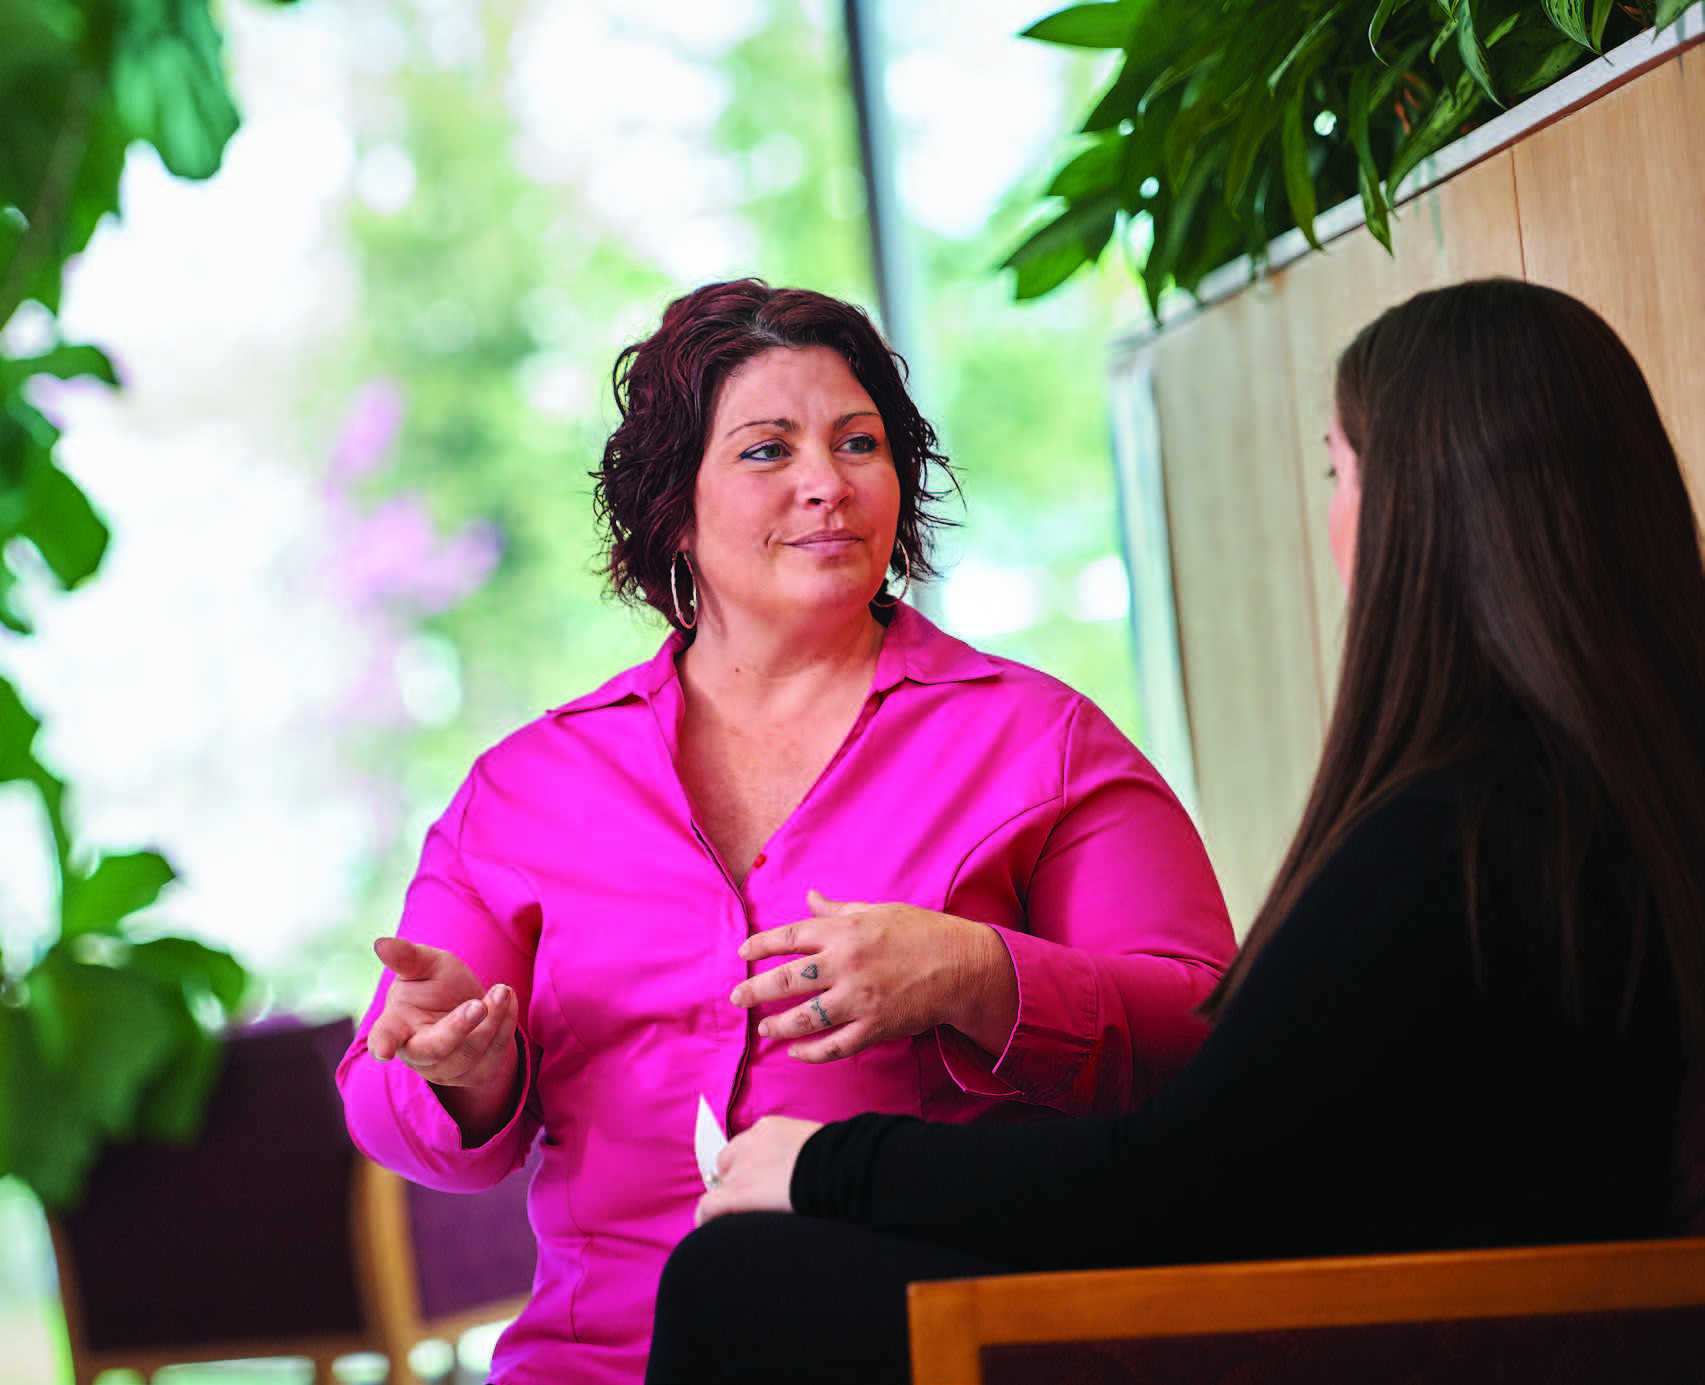 As part of her cancer team care, patient Lafler (left) meets with social worker Alicia Italiano.